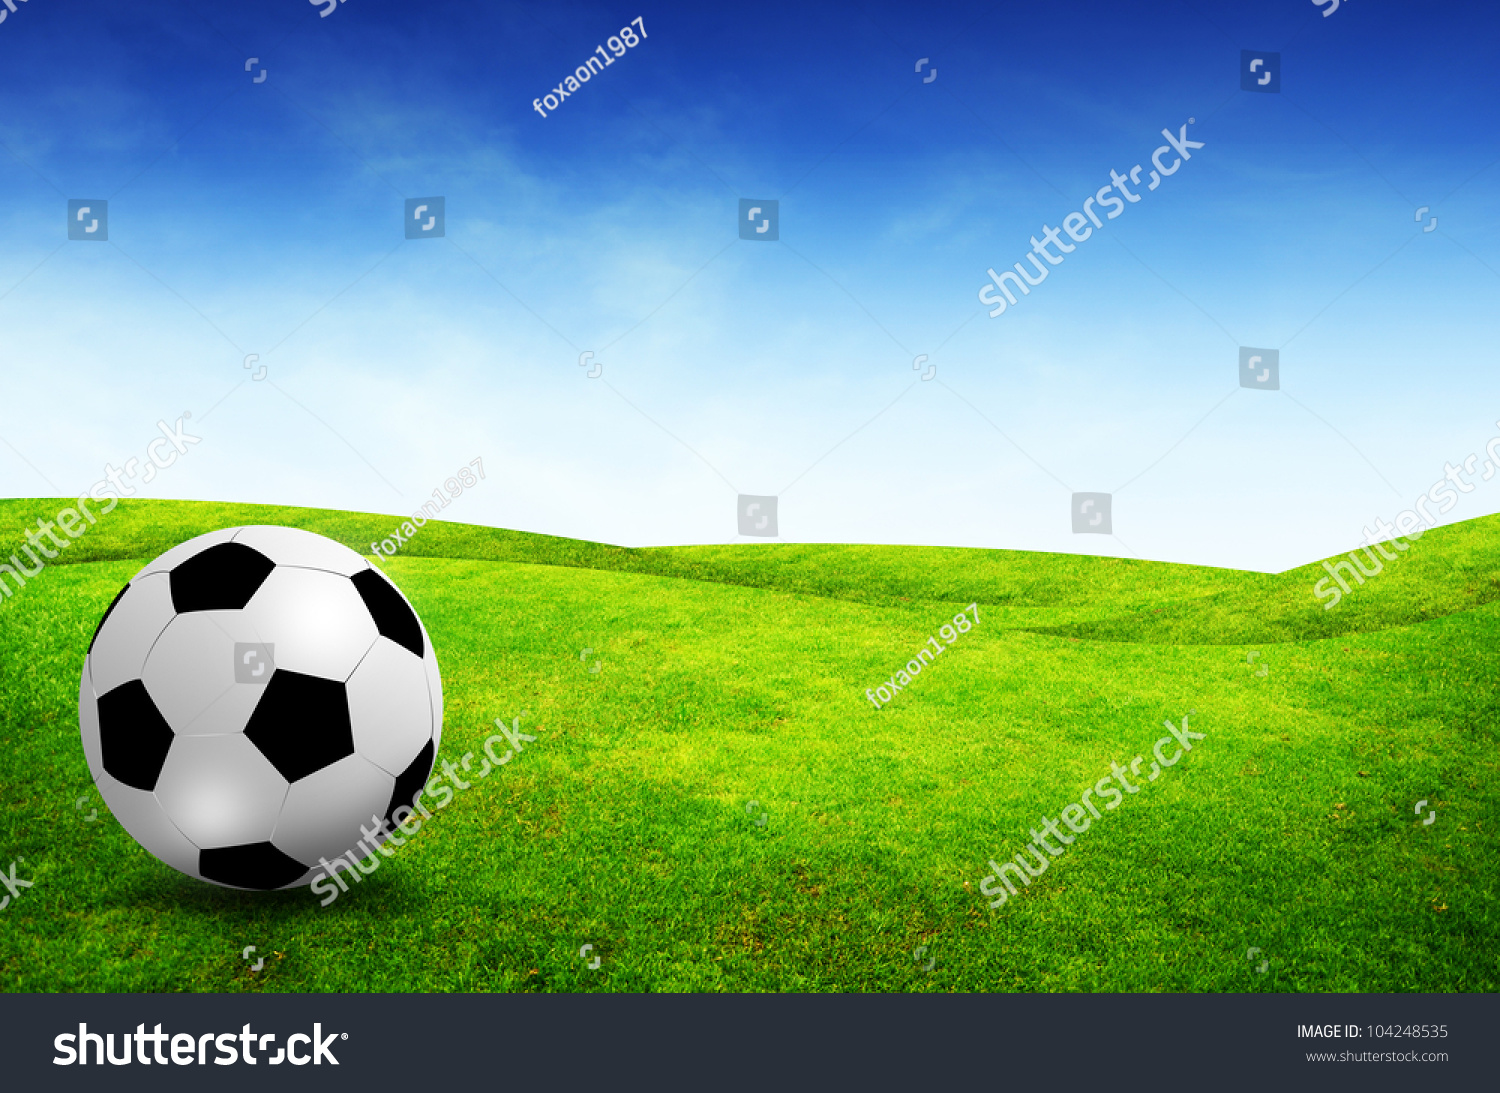 Soccer Football On Green Field With Blue Sky Background: Football Field Soccer Stadium On Green Stock Illustration